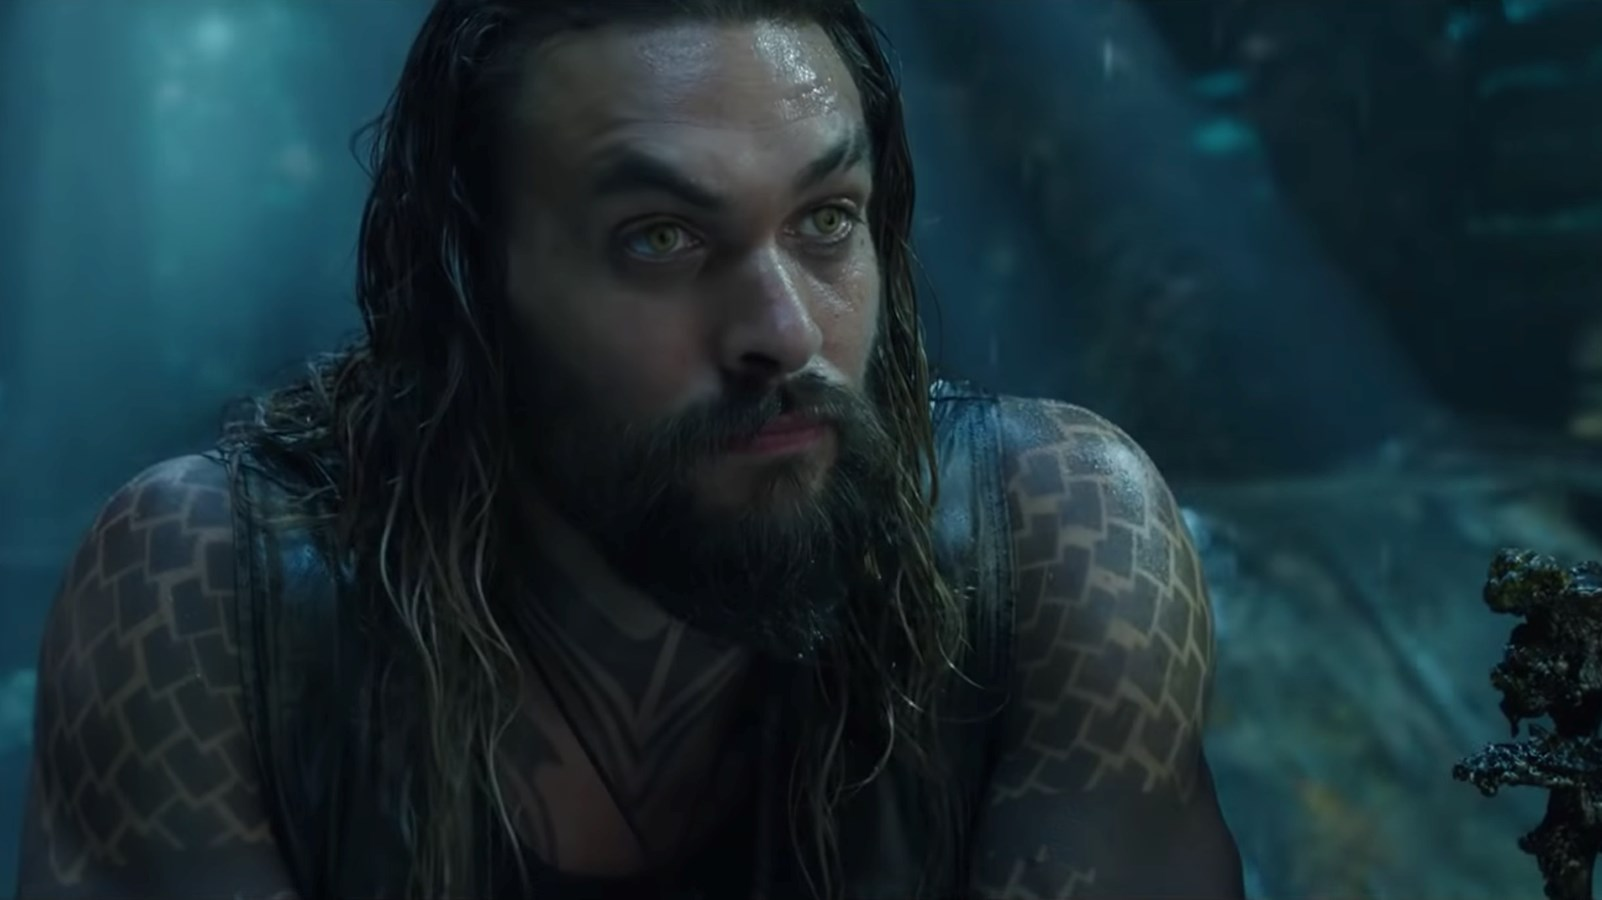 Running time for Aquaman unveiled